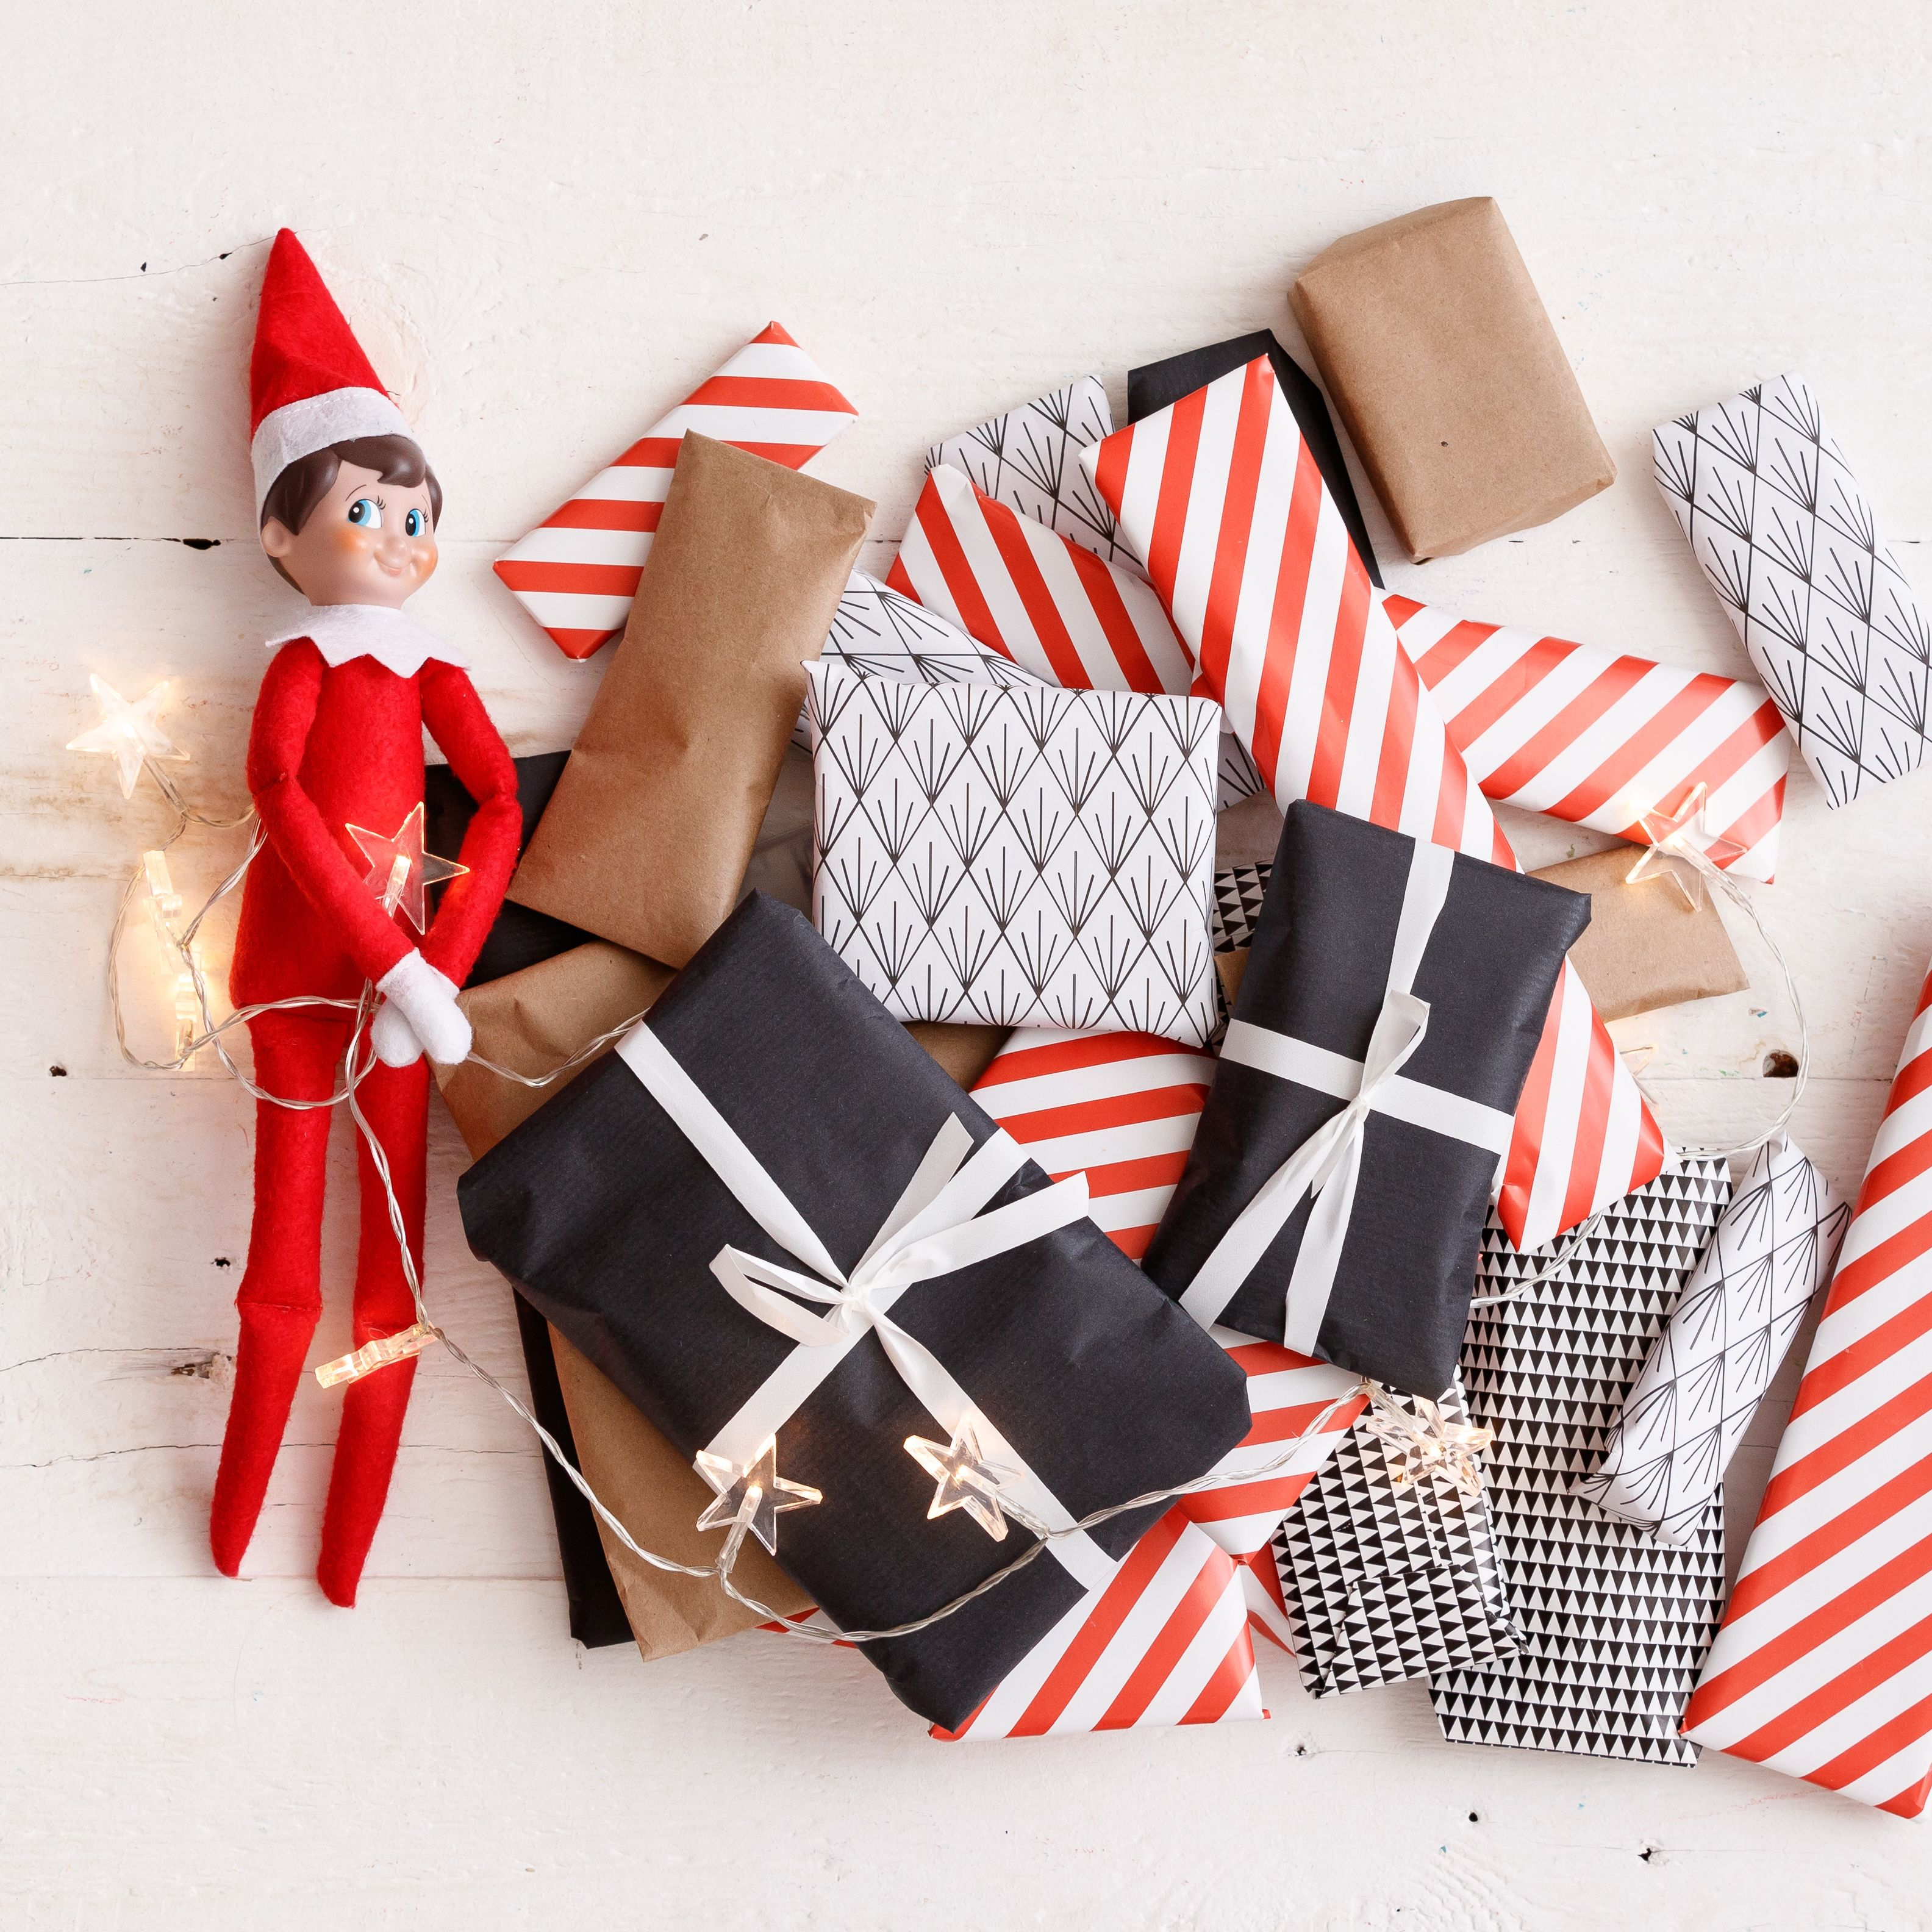 469d6a4dc 25 Funny Elf on the Shelf Ideas 2018 - Cute Things With Elf on the Shelf